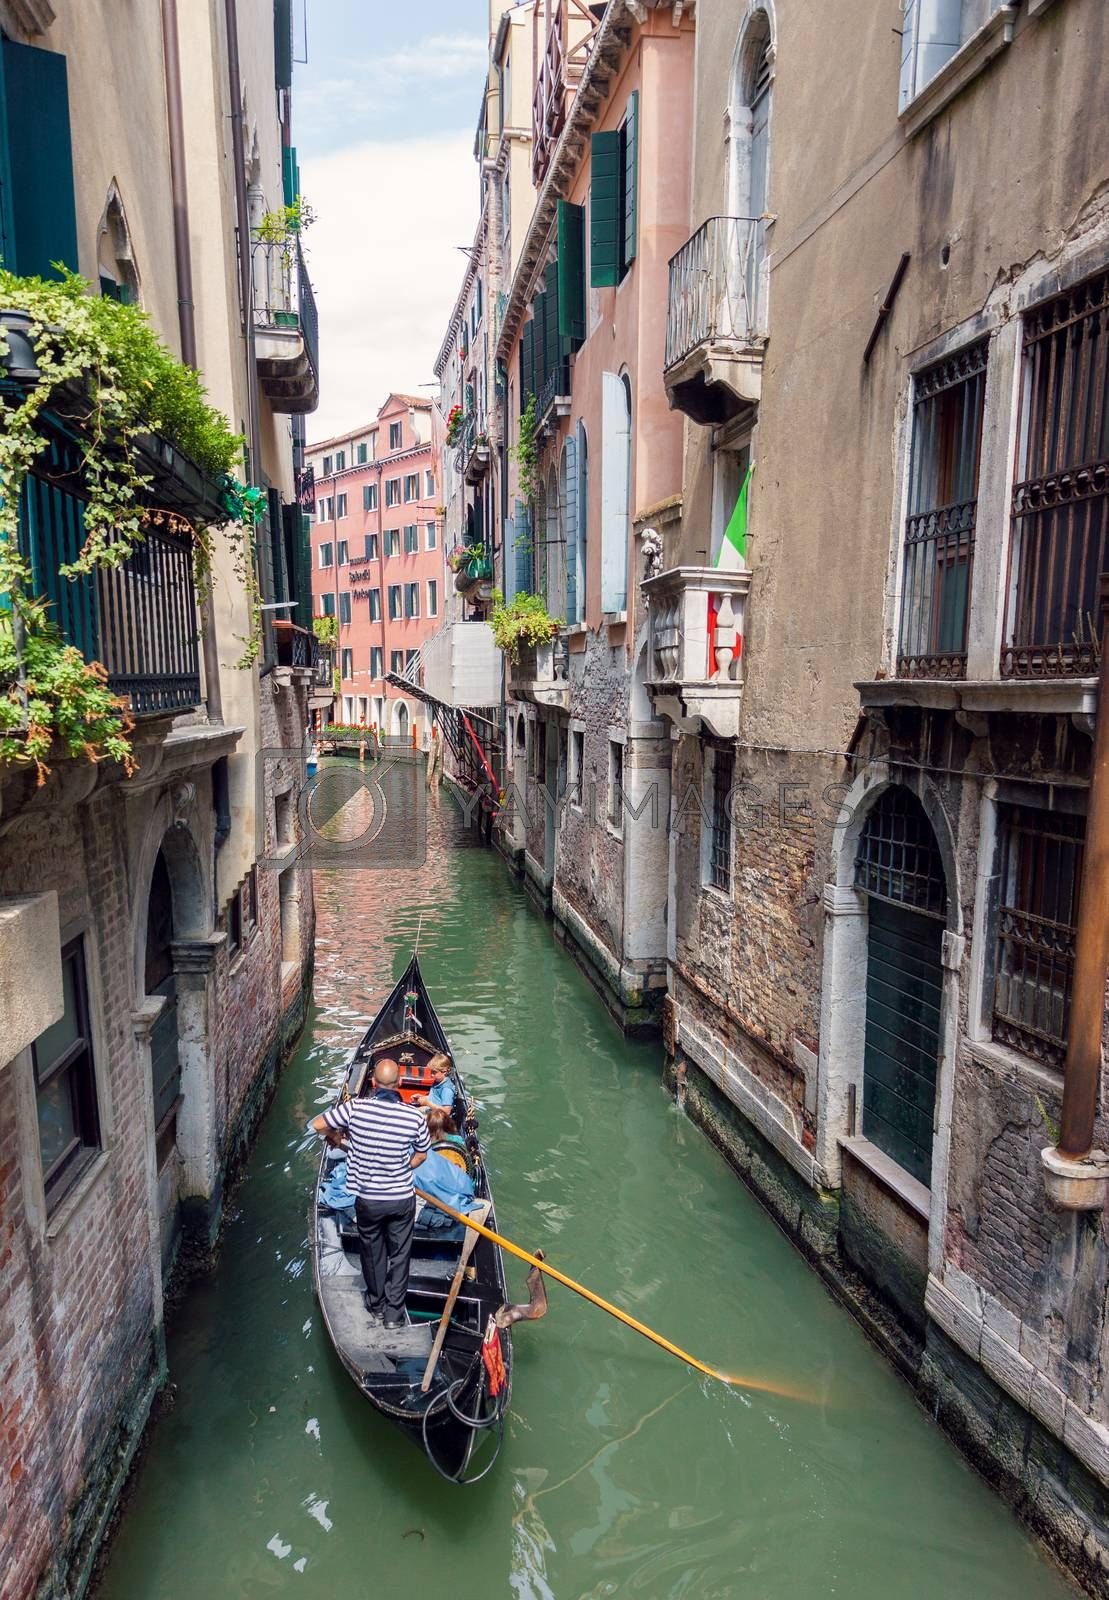 VENICE, ITALY - MAY 27, 2015: Traditional venetian gondola sailing tourists in remote canal, in Venice, Italy